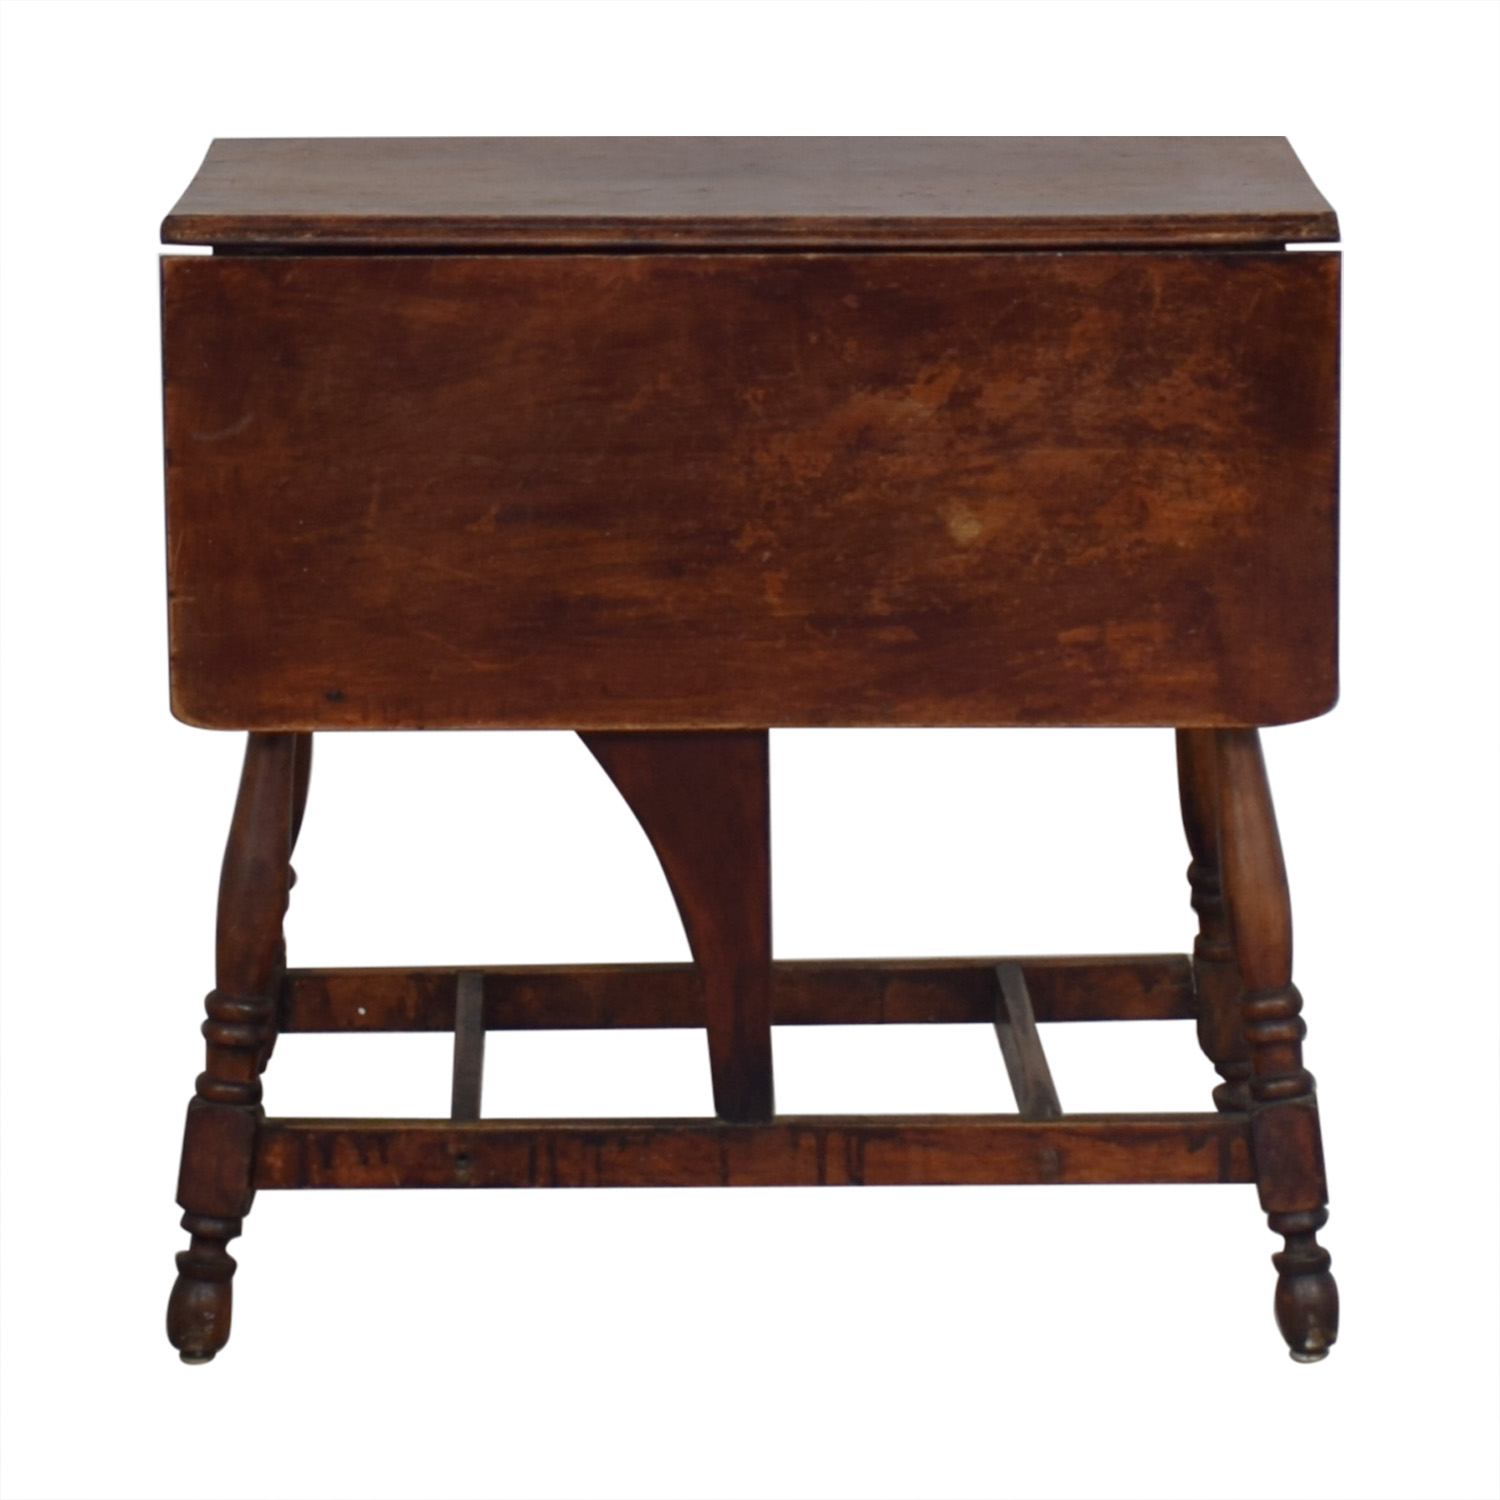 shop  Antique Table online